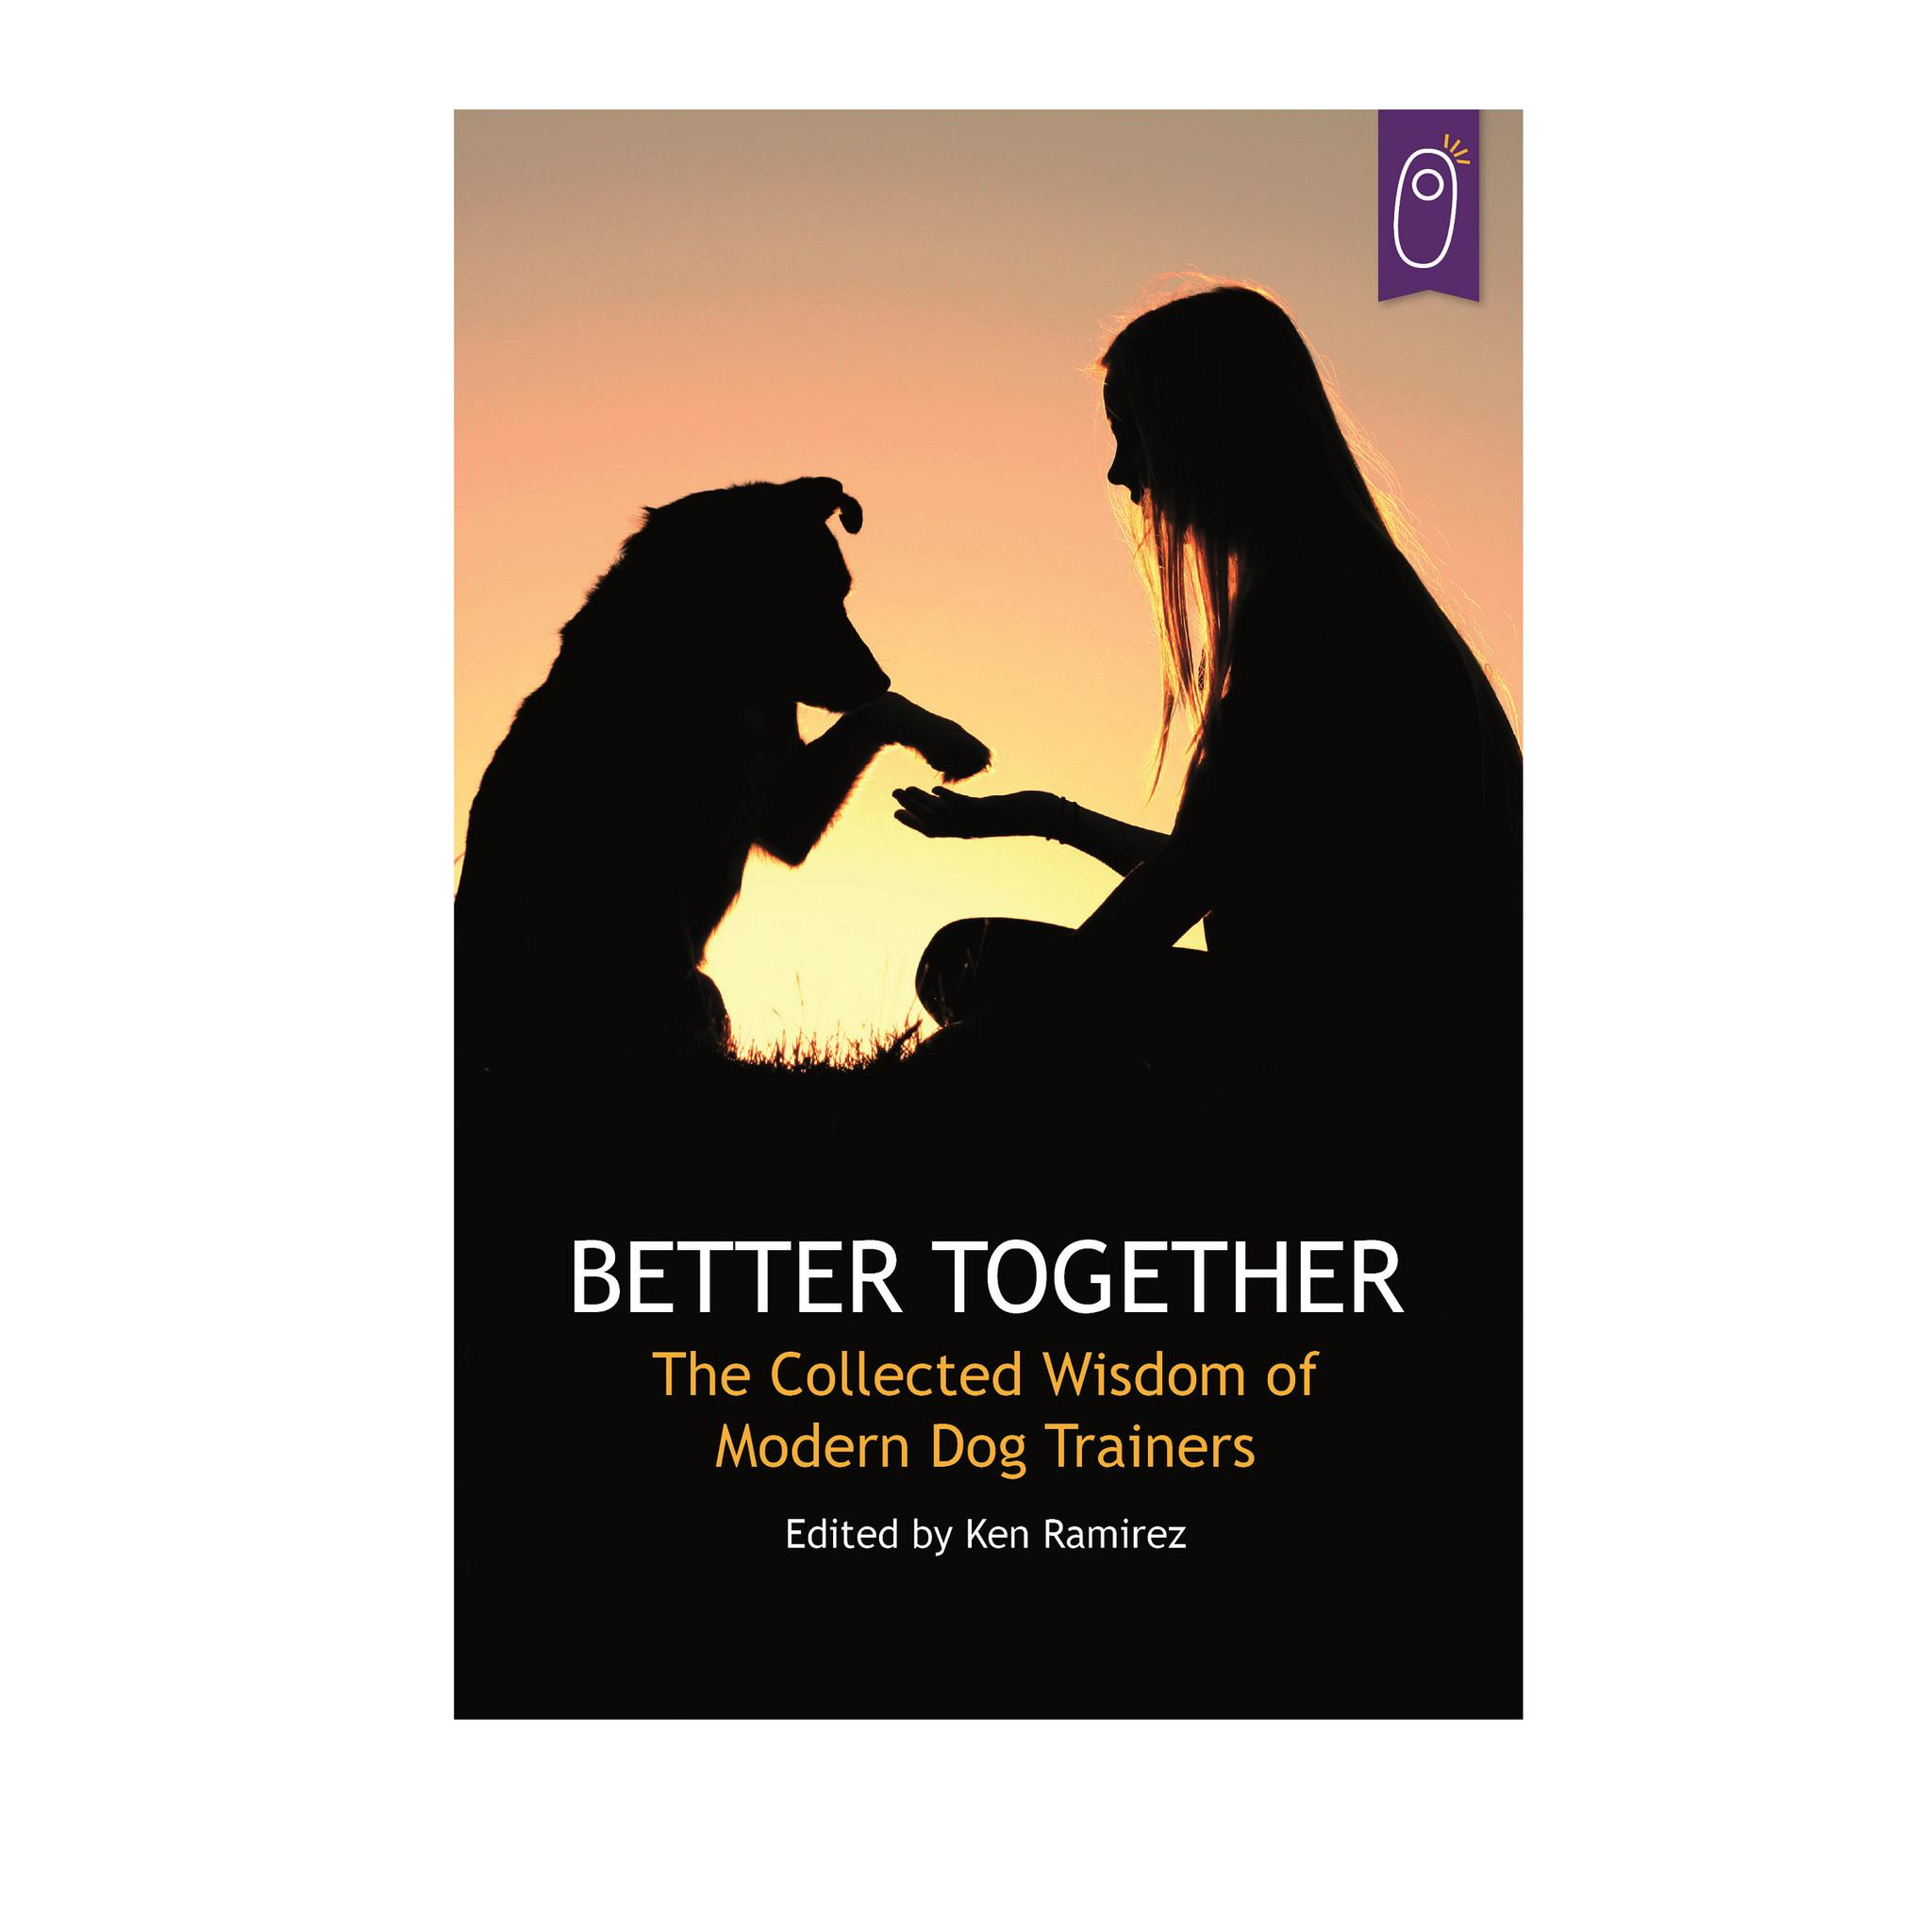 Better Together Collected Wisdom Modern Dog Trainers